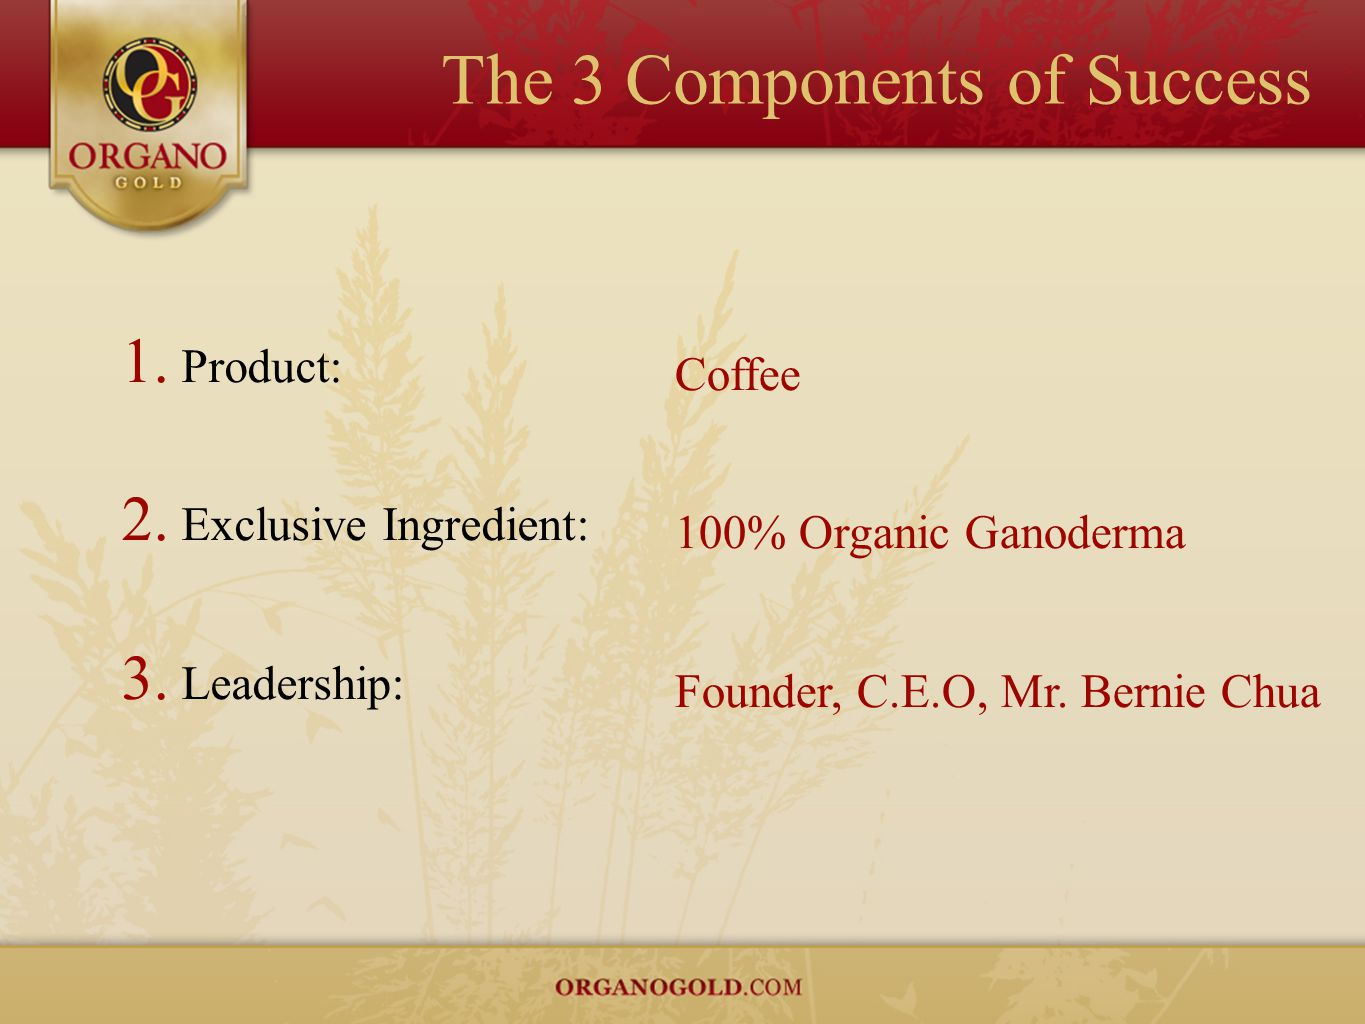 # 1 Daily Retail Sales Earn 50% - 100% Retail Profit As an ORGANO GOLD Independent Representative you can sell your products to Retail Customers personally or through your personalized website.